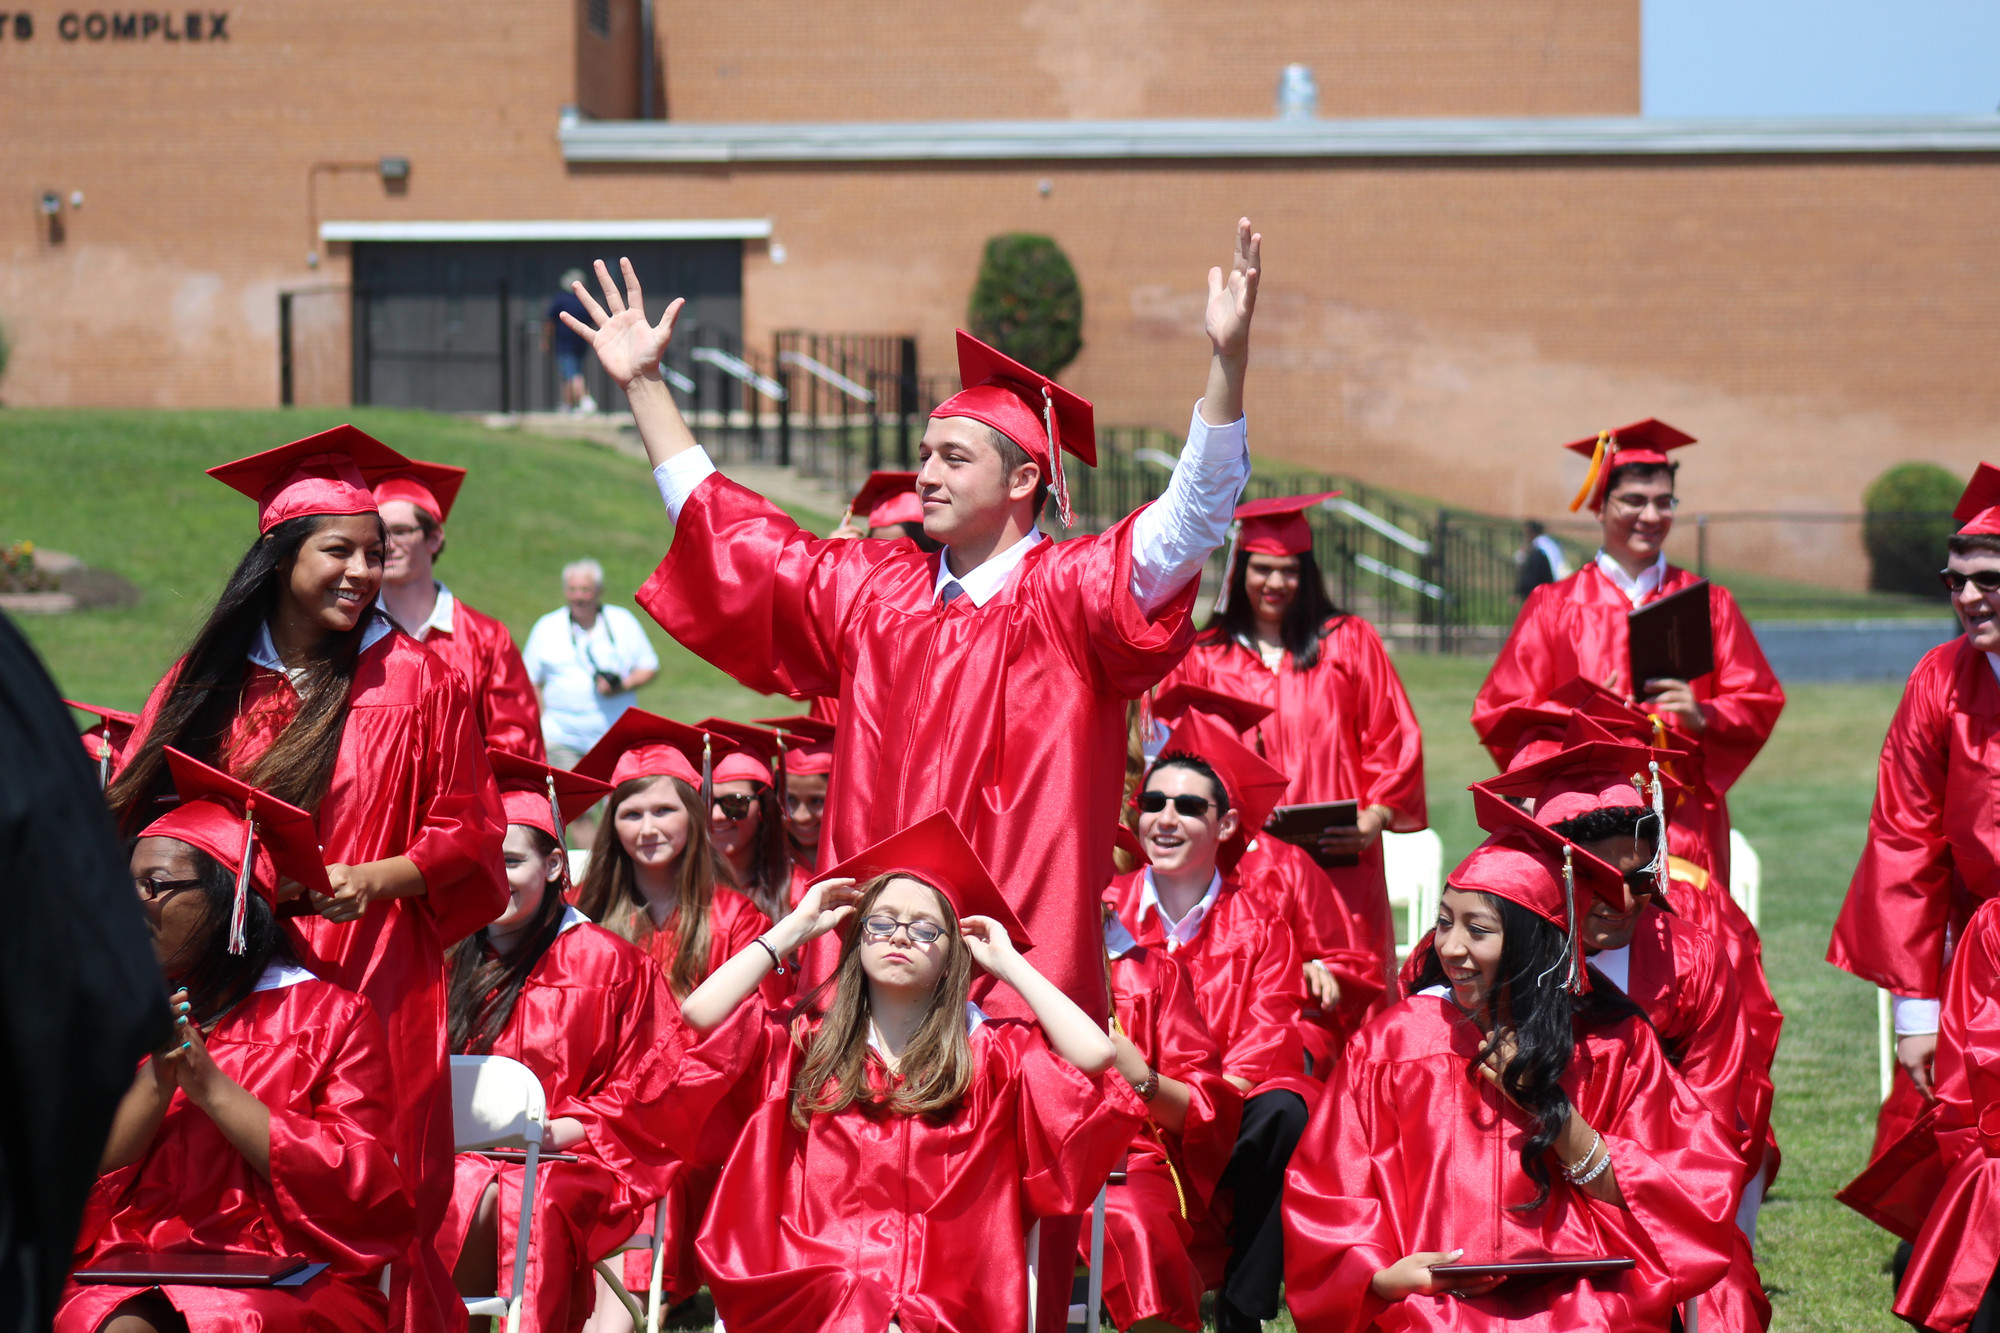 W.T. Clarke's Michael Gismondi showed his enthusiasm at the June 29 graduation ceremony.